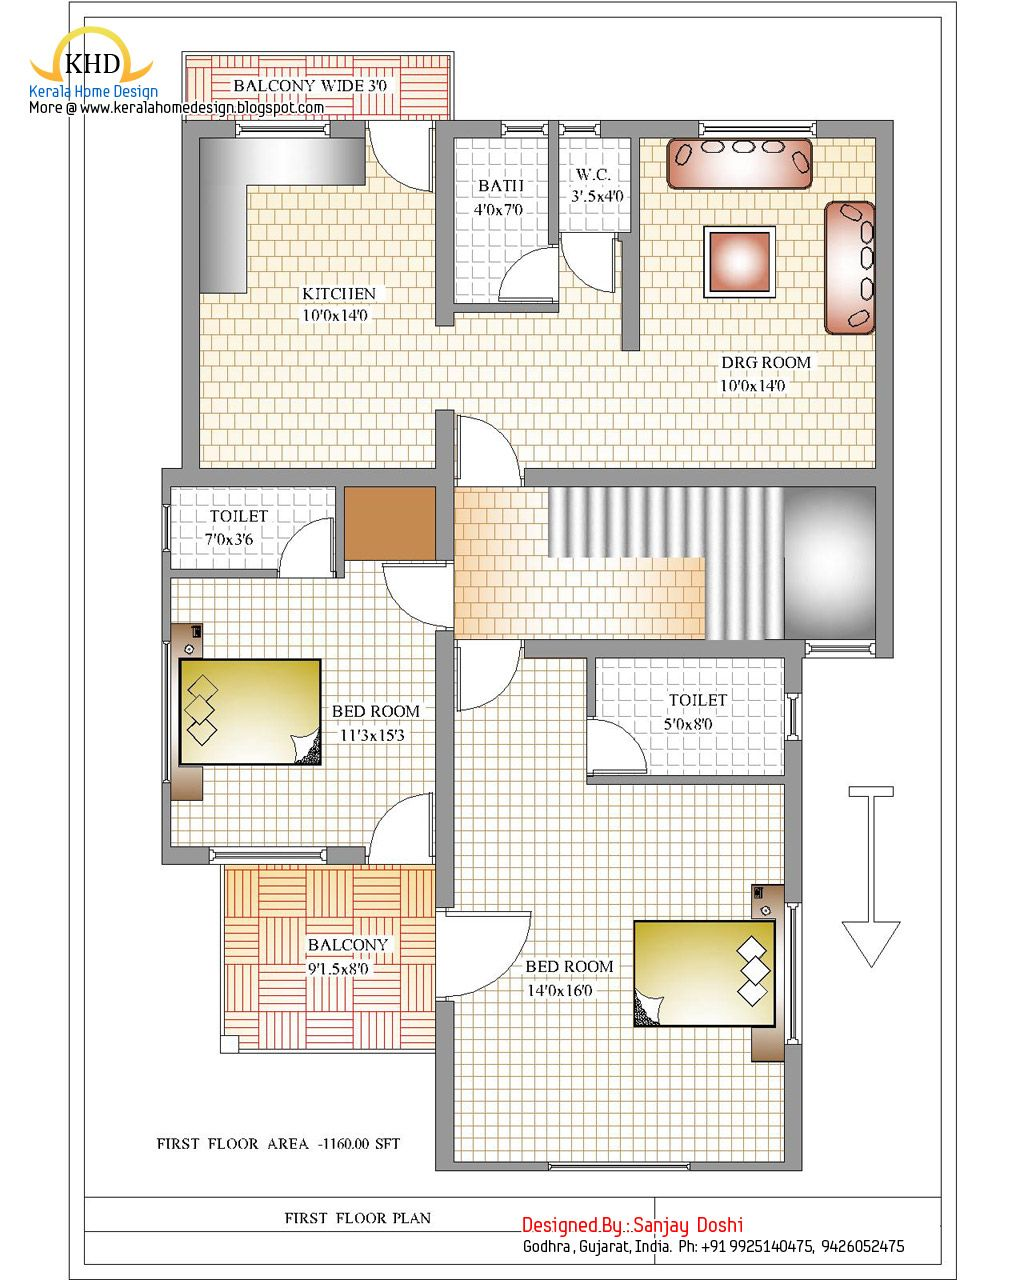 duplex floor plans indian duplex house design duplex house map architecture and design pinterest duplex floor plans duplex house design and